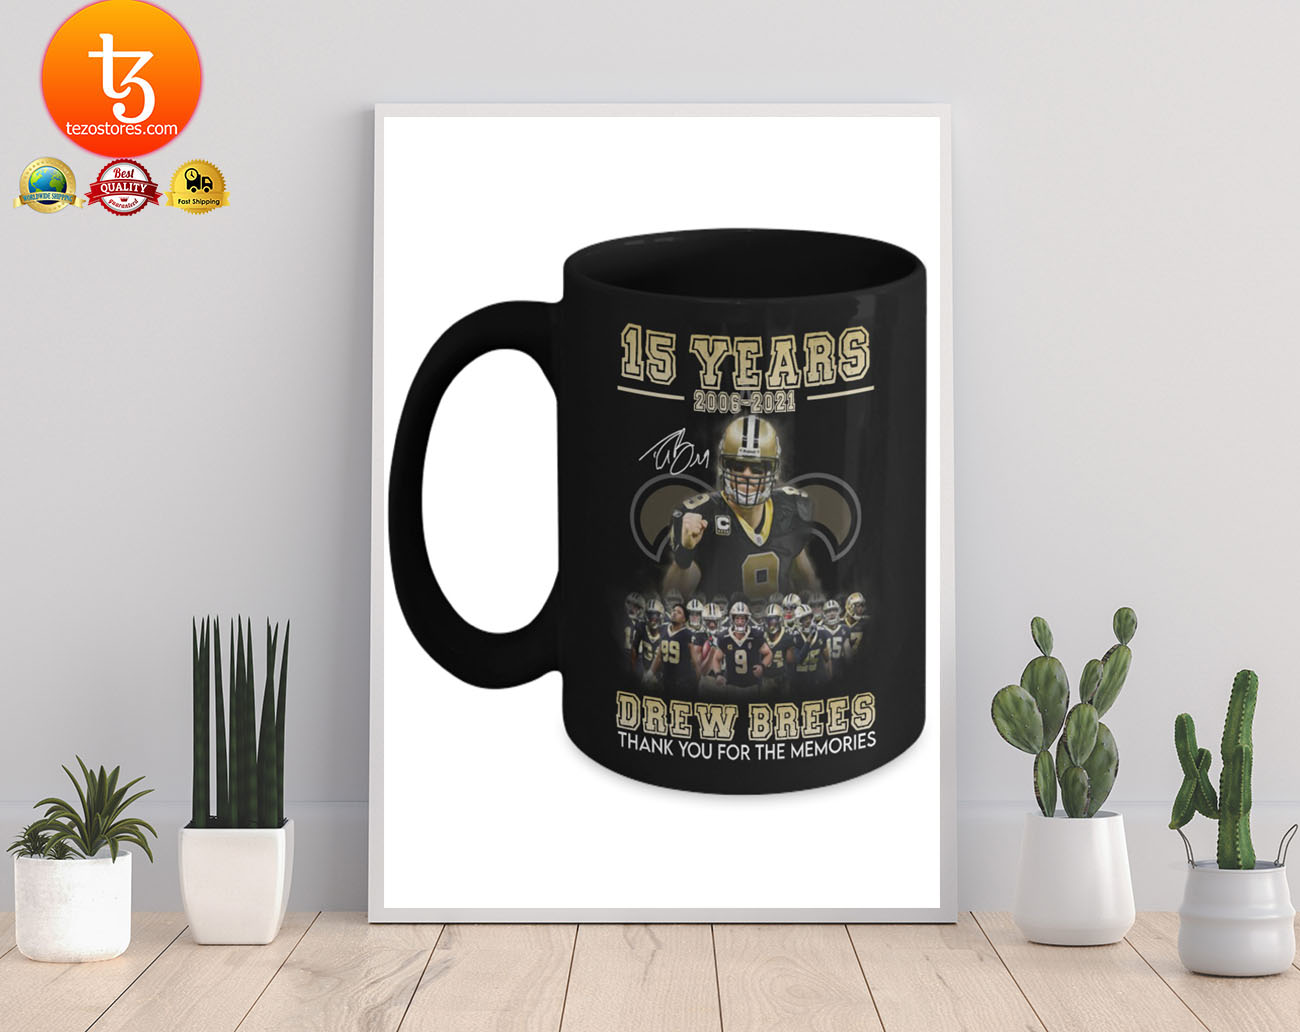 15 years 2006 - 2021 drew brees thank you for the memories mug 19